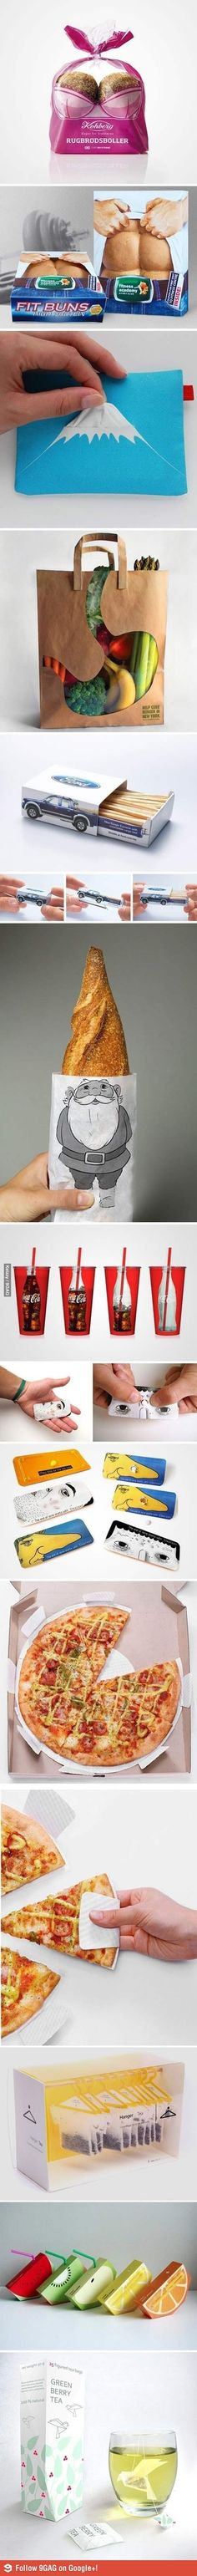 These are clever